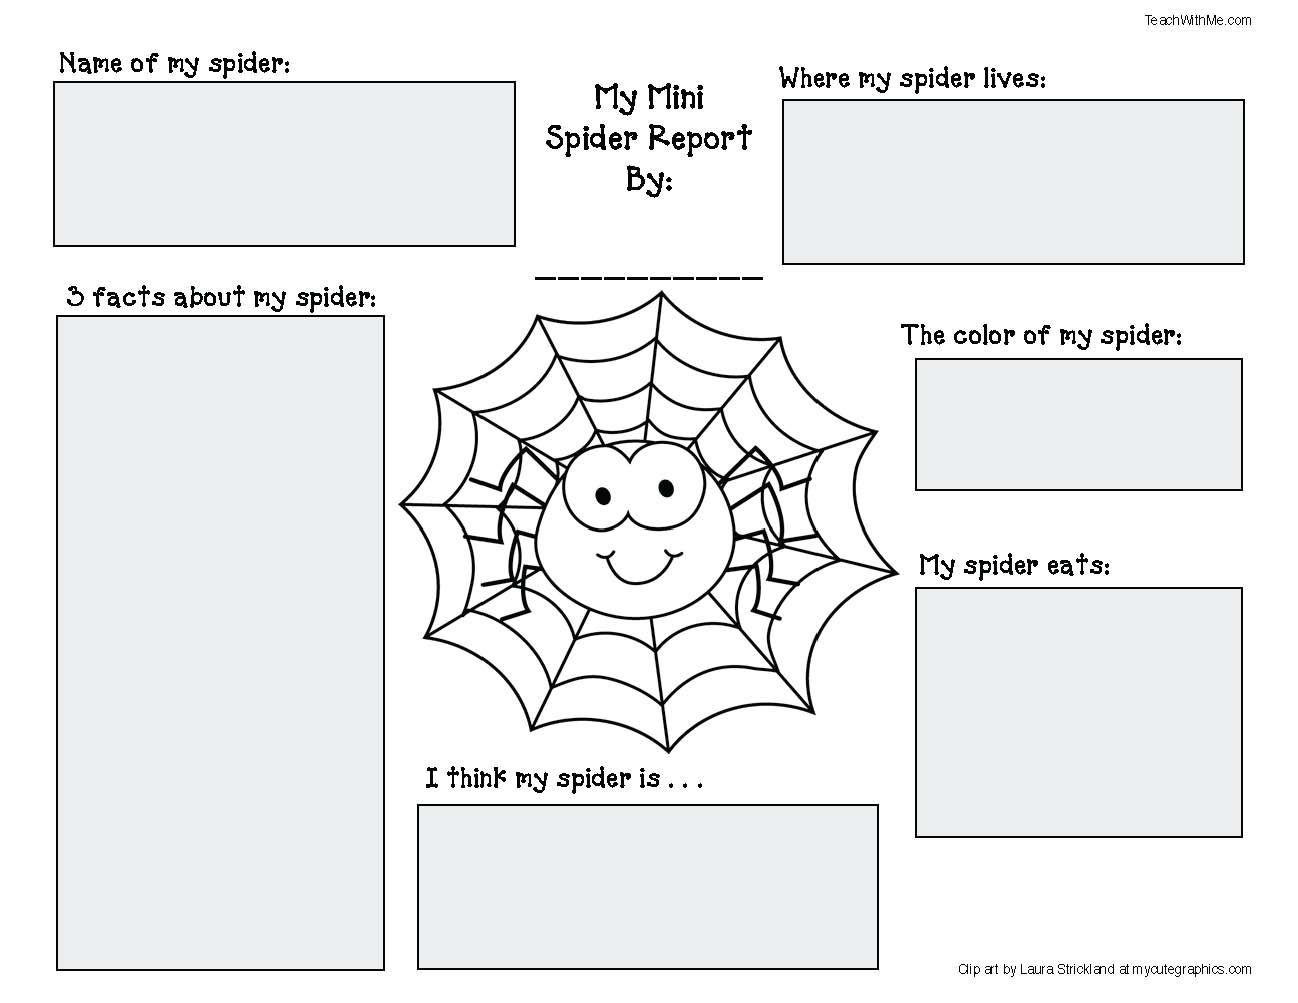 Spider activities and games that teach venn diagram template spider activities and games that teach ccuart Gallery